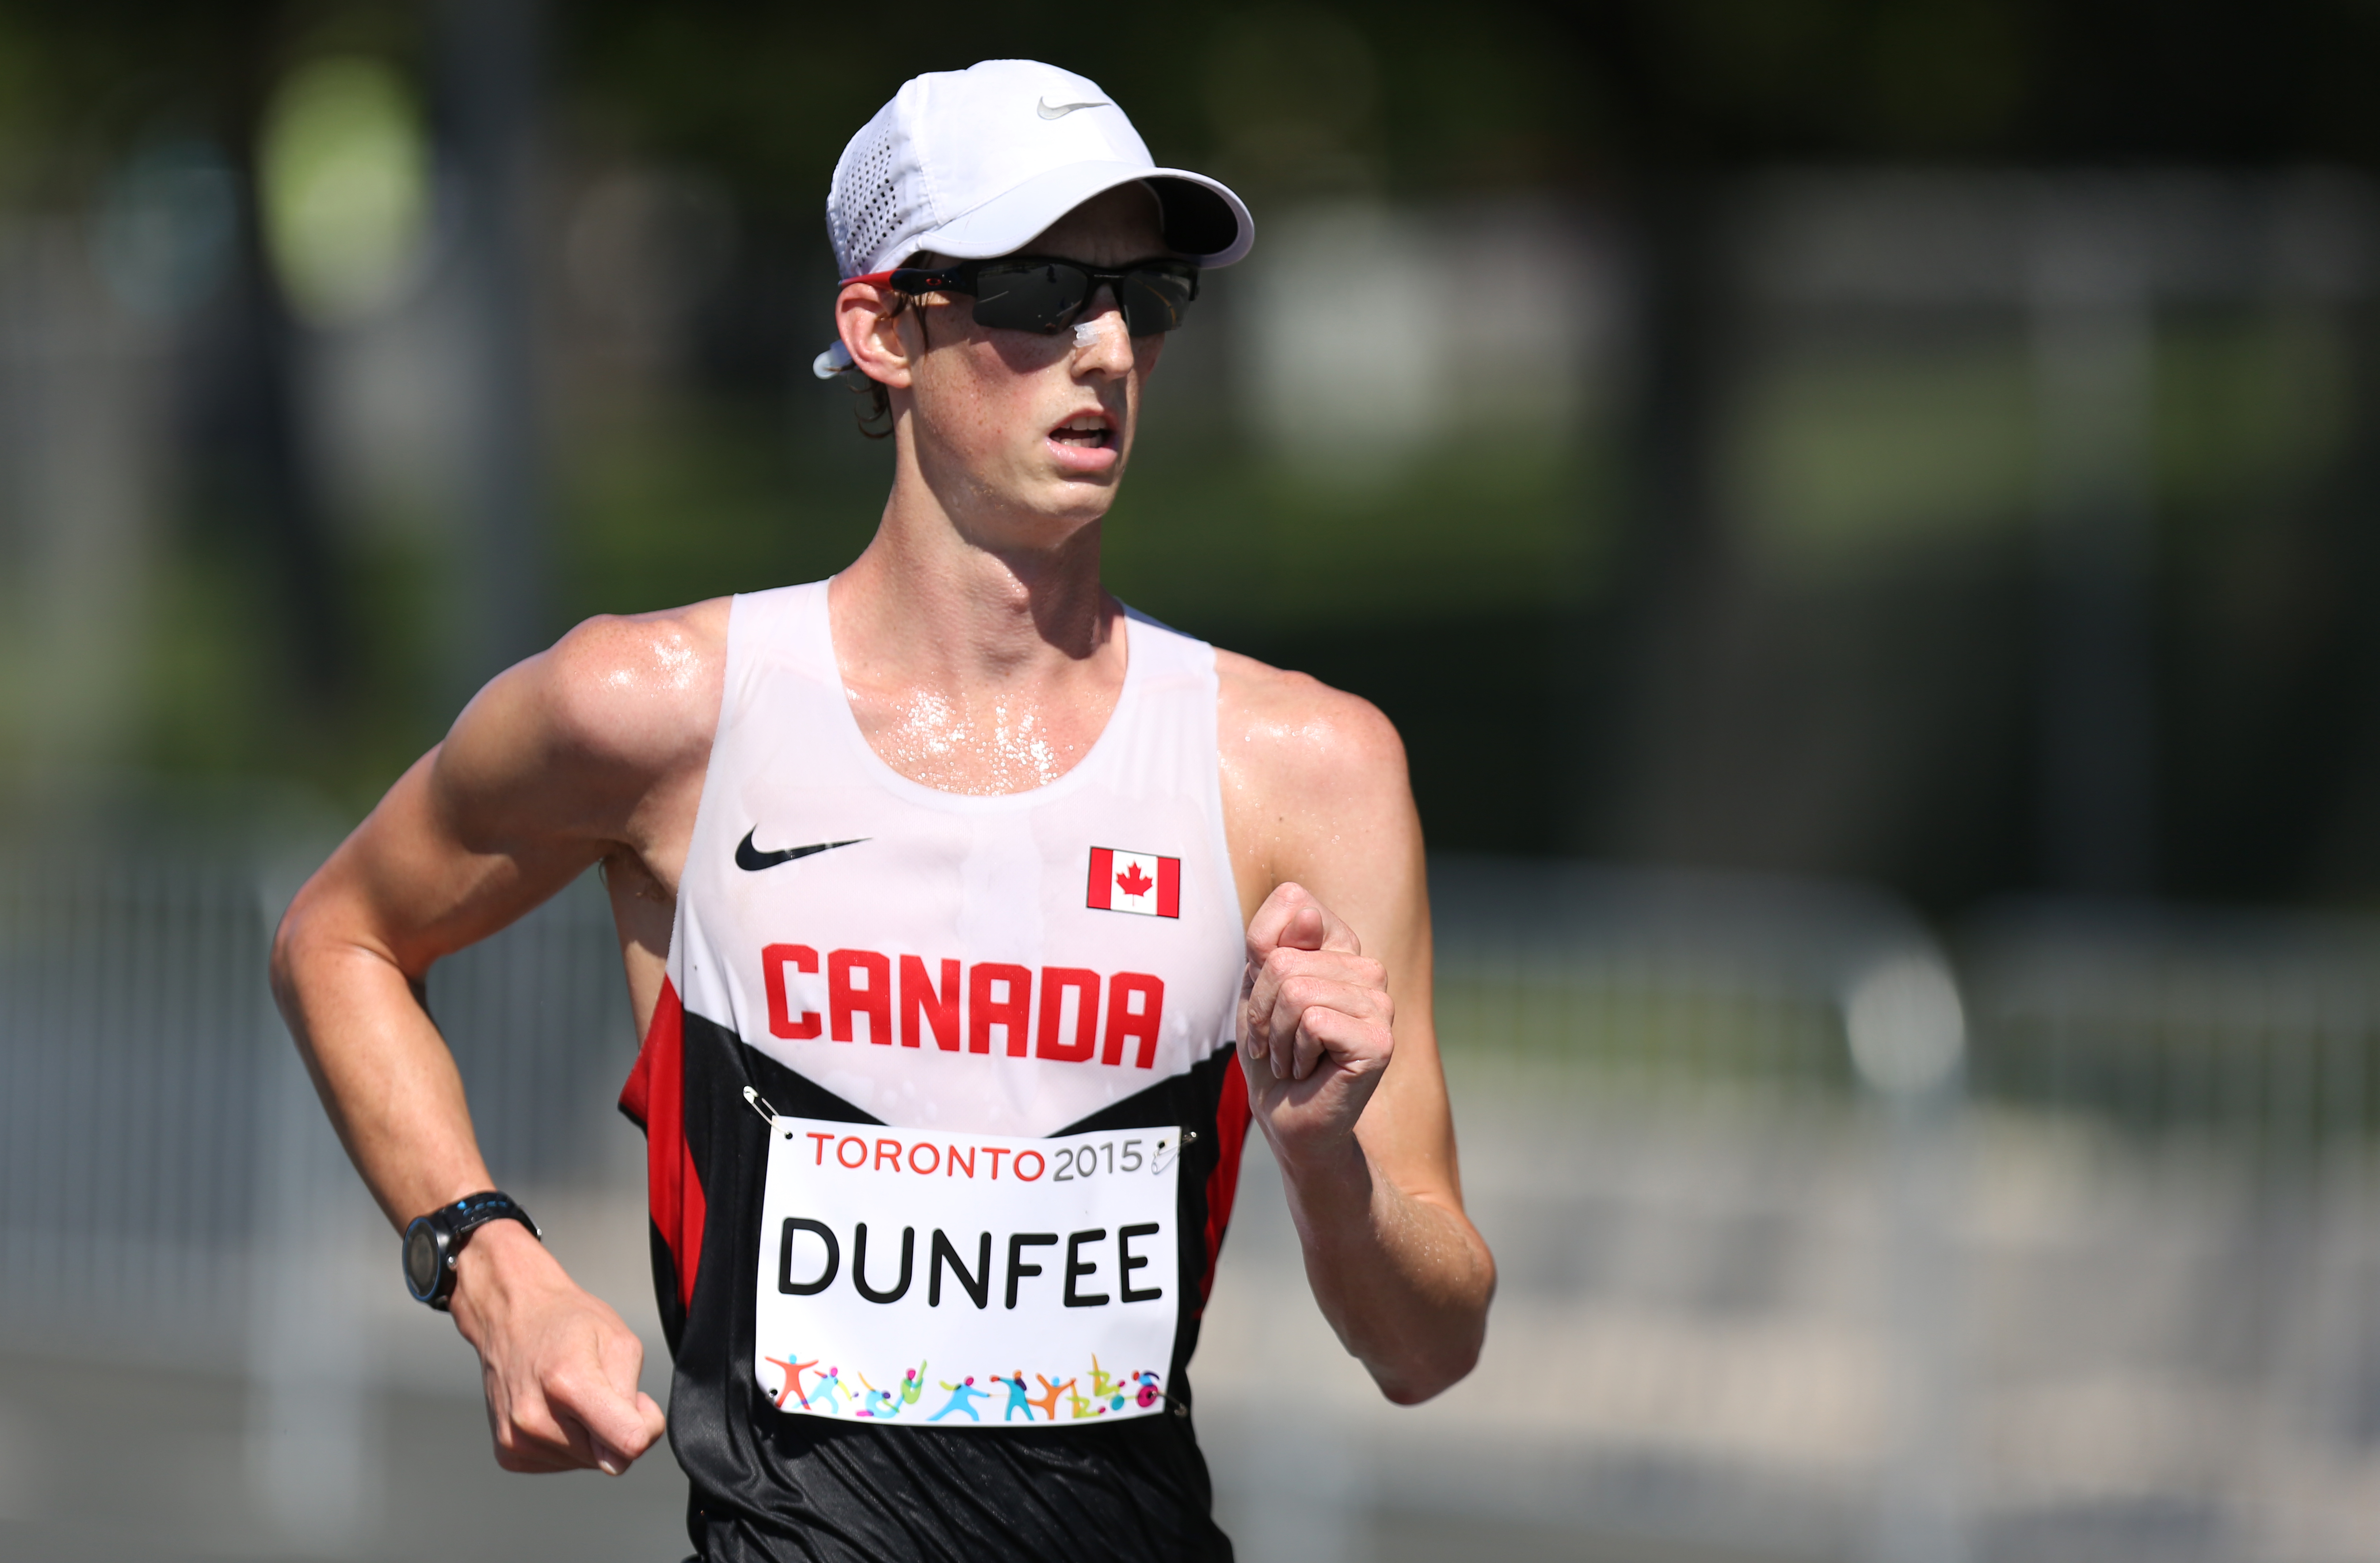 Dunfee in a racewalk with sunglasses and hat on